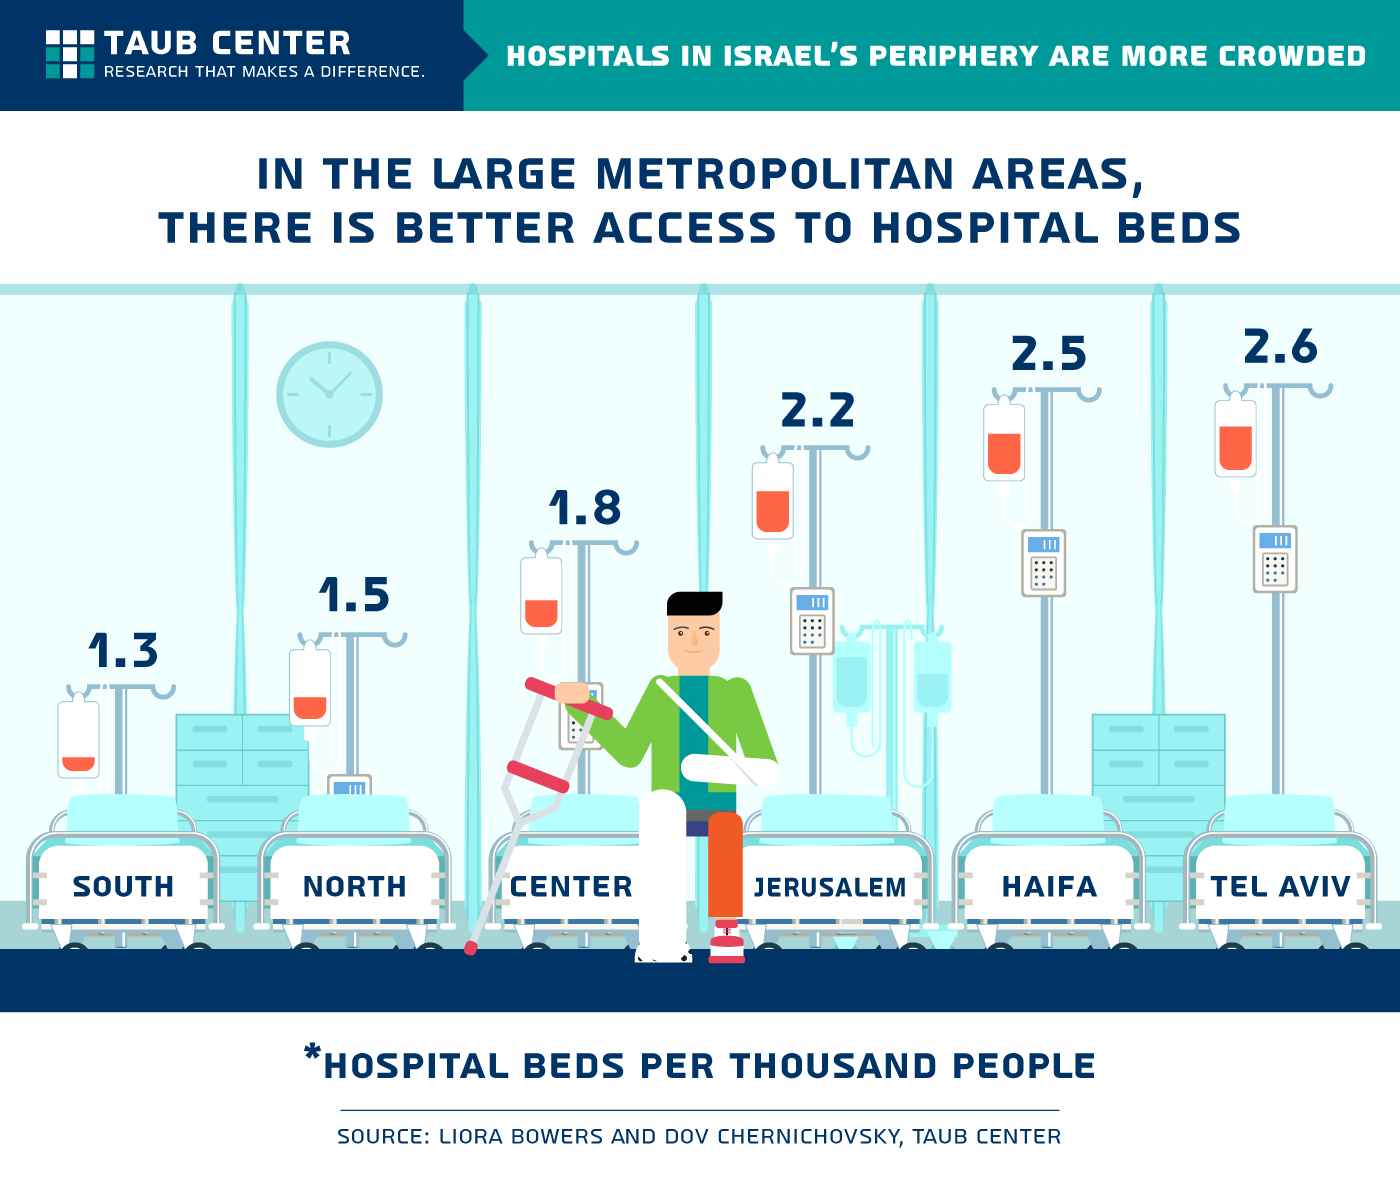 Hospital beds in periphery and center